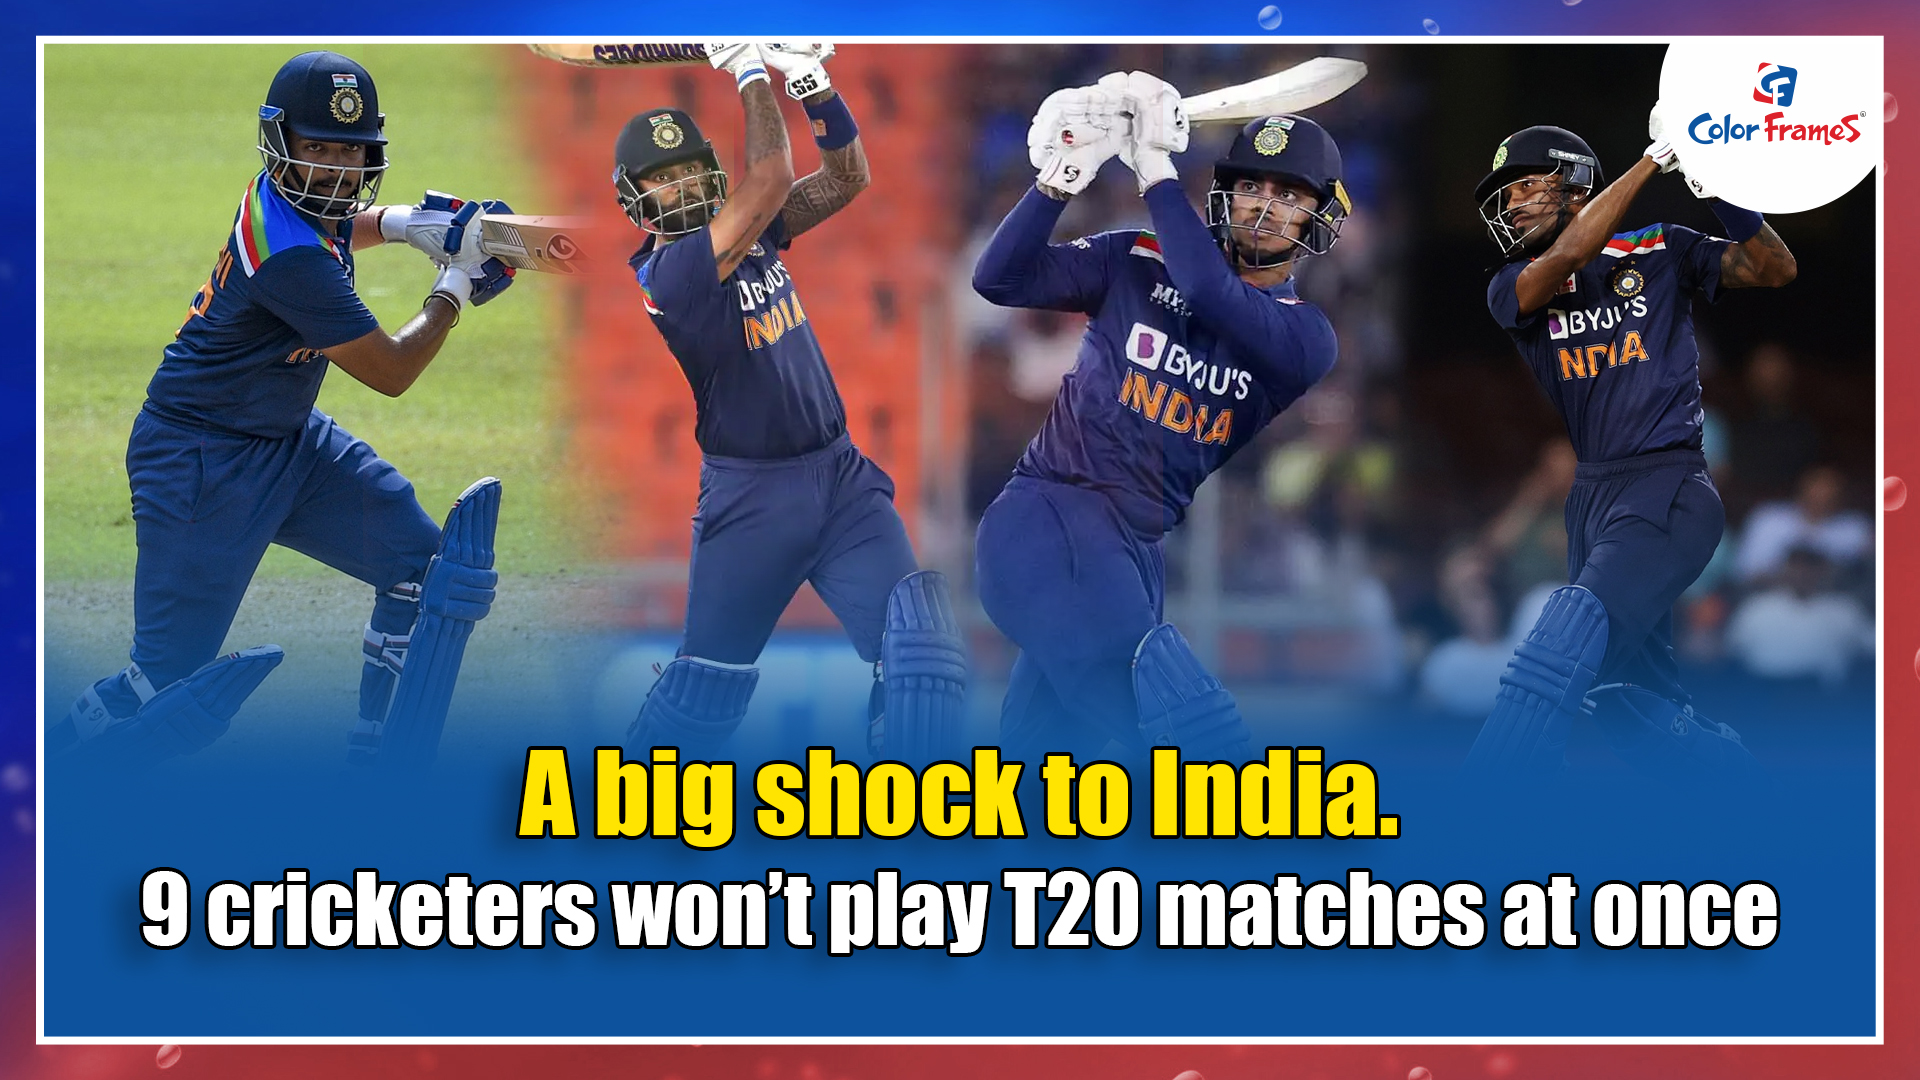 A big shock to India. 9 cricketers won't play T20 matches at once